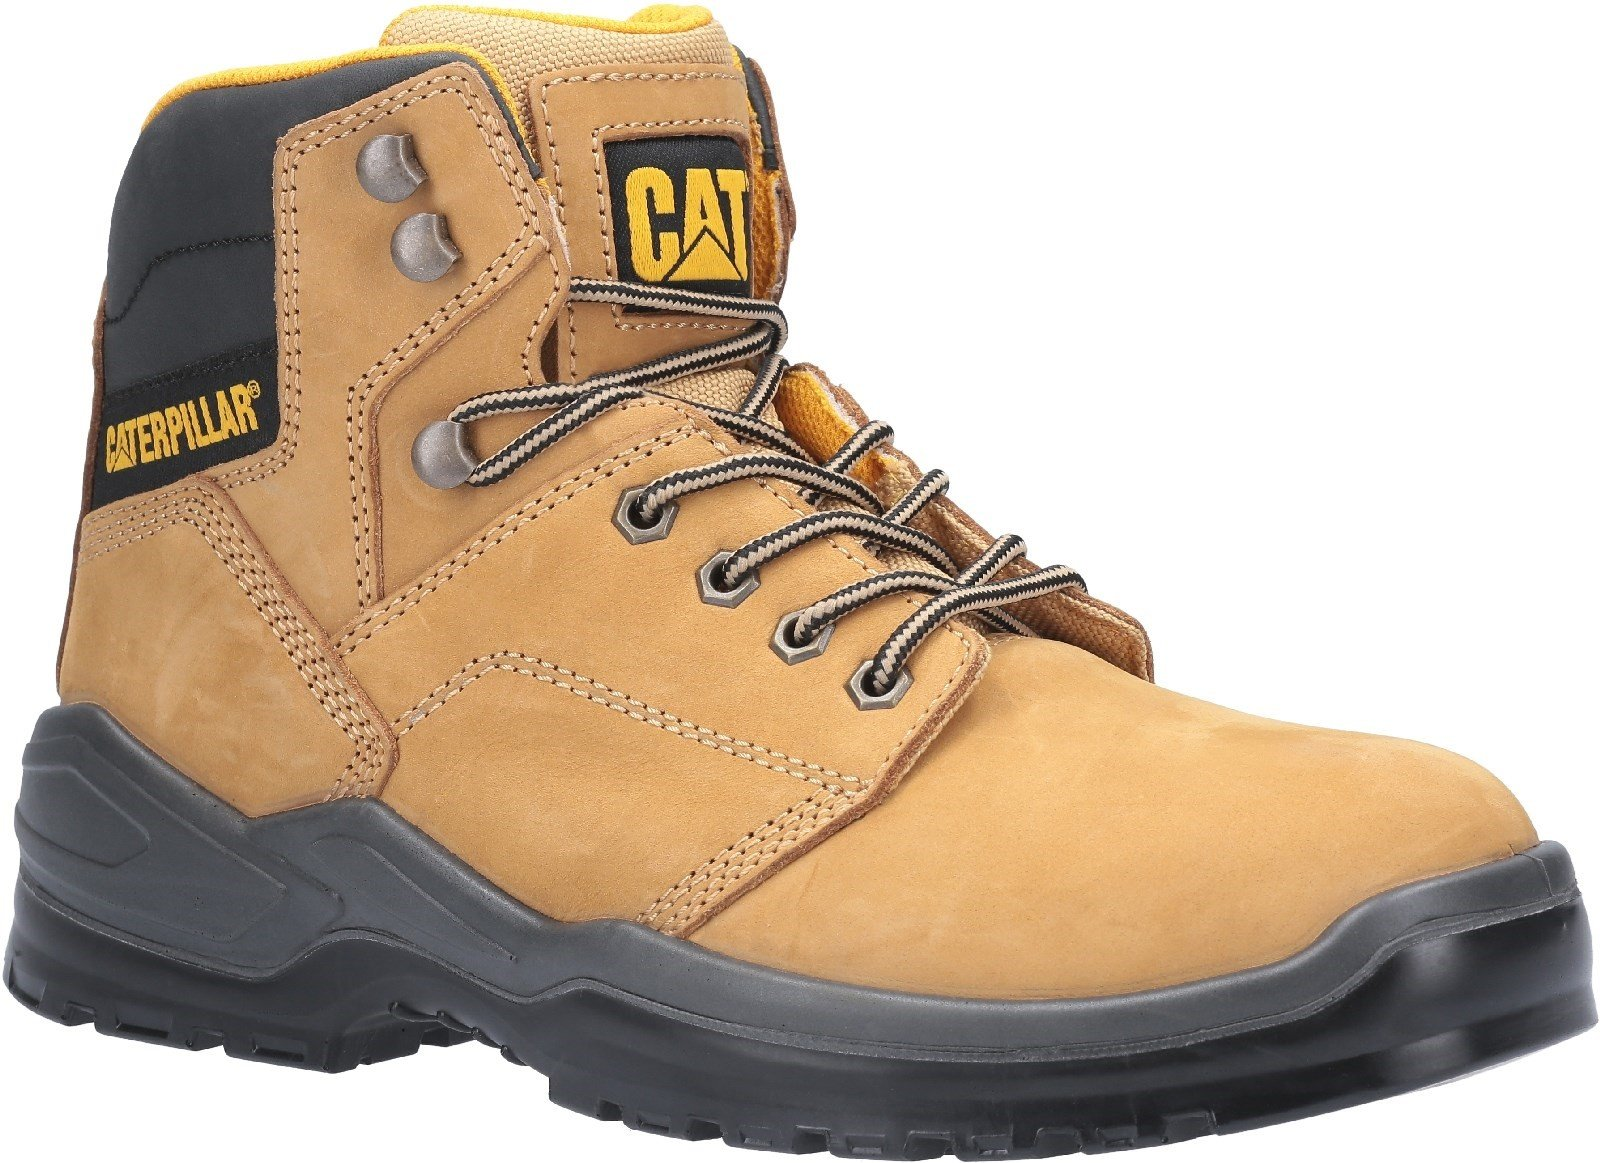 Caterpillar Unisex Striver Lace Up Injected Safety Boot Honey 30703 - Honey 4